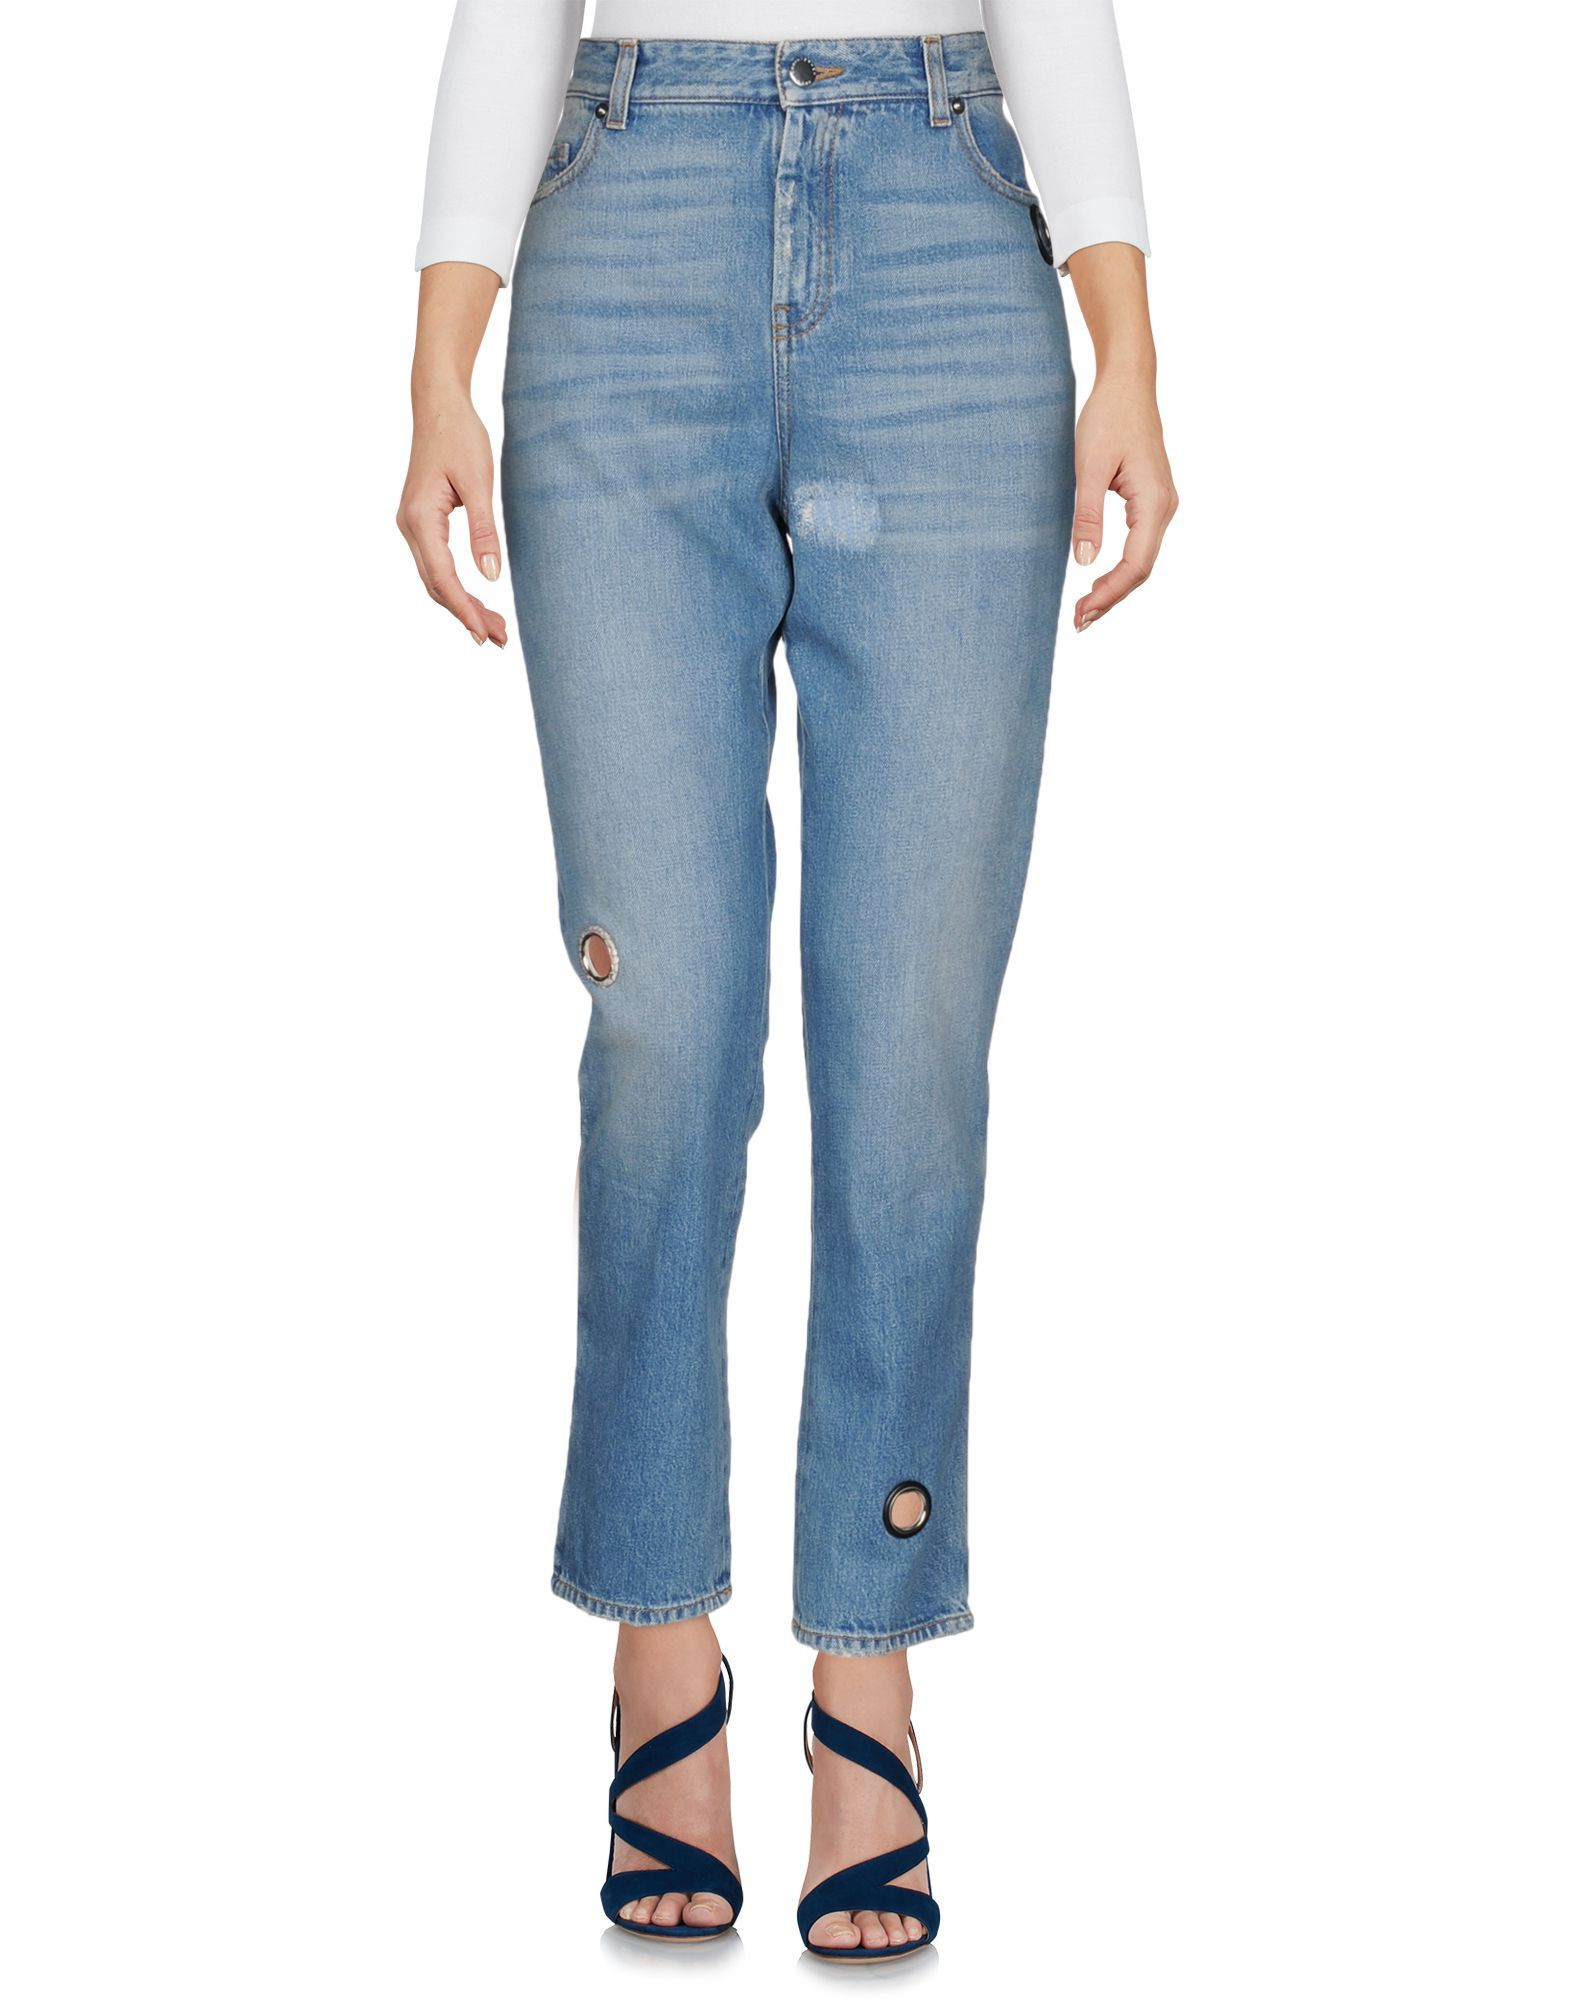 Christopher Kane Blue Cotton Pantaloni jeans